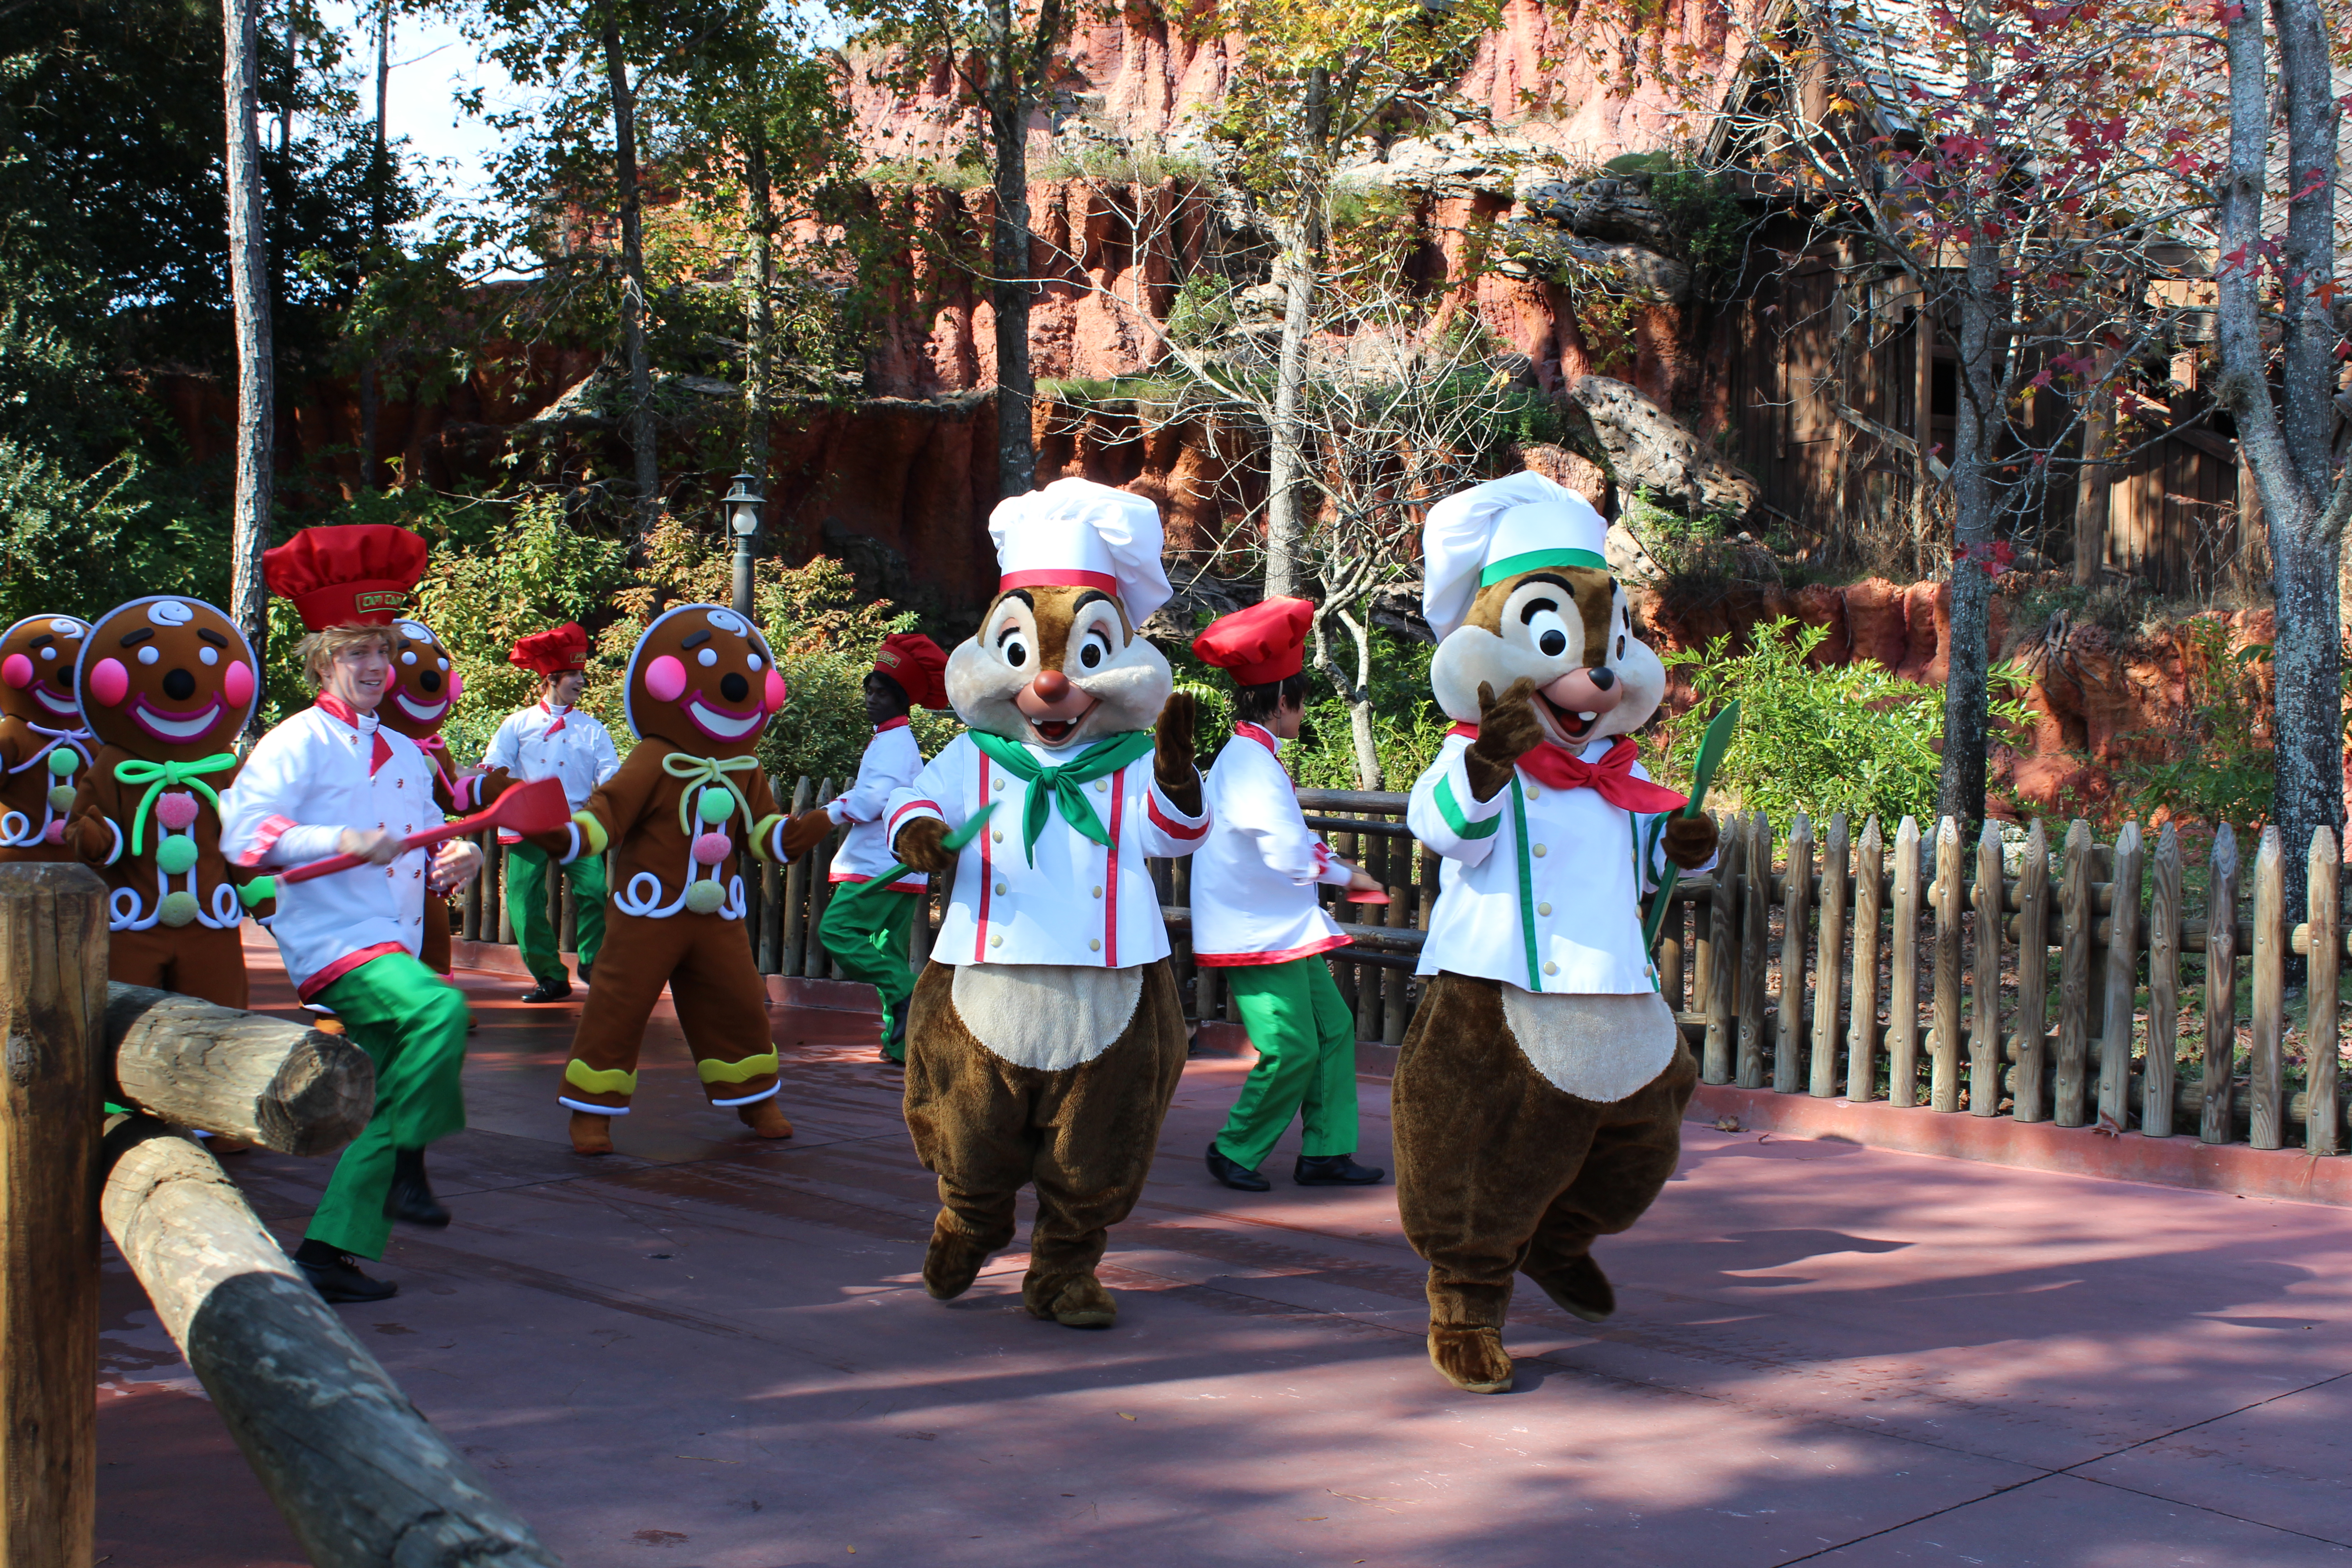 Parade Chip 'n' Dale